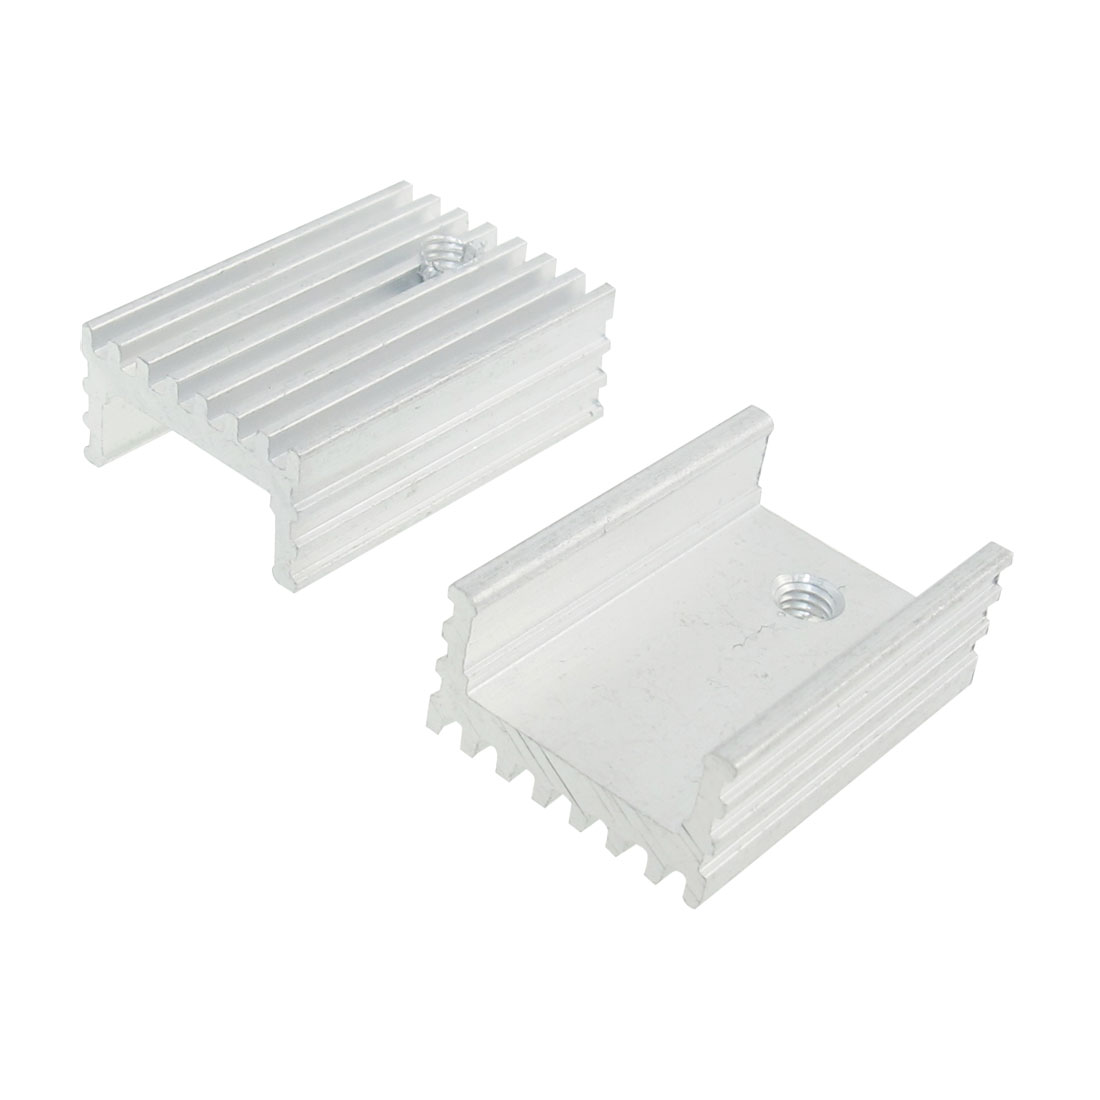 2 Pcs 15x8x22mm Heatsink Heat Diffuse Aluminium Cooling Fin